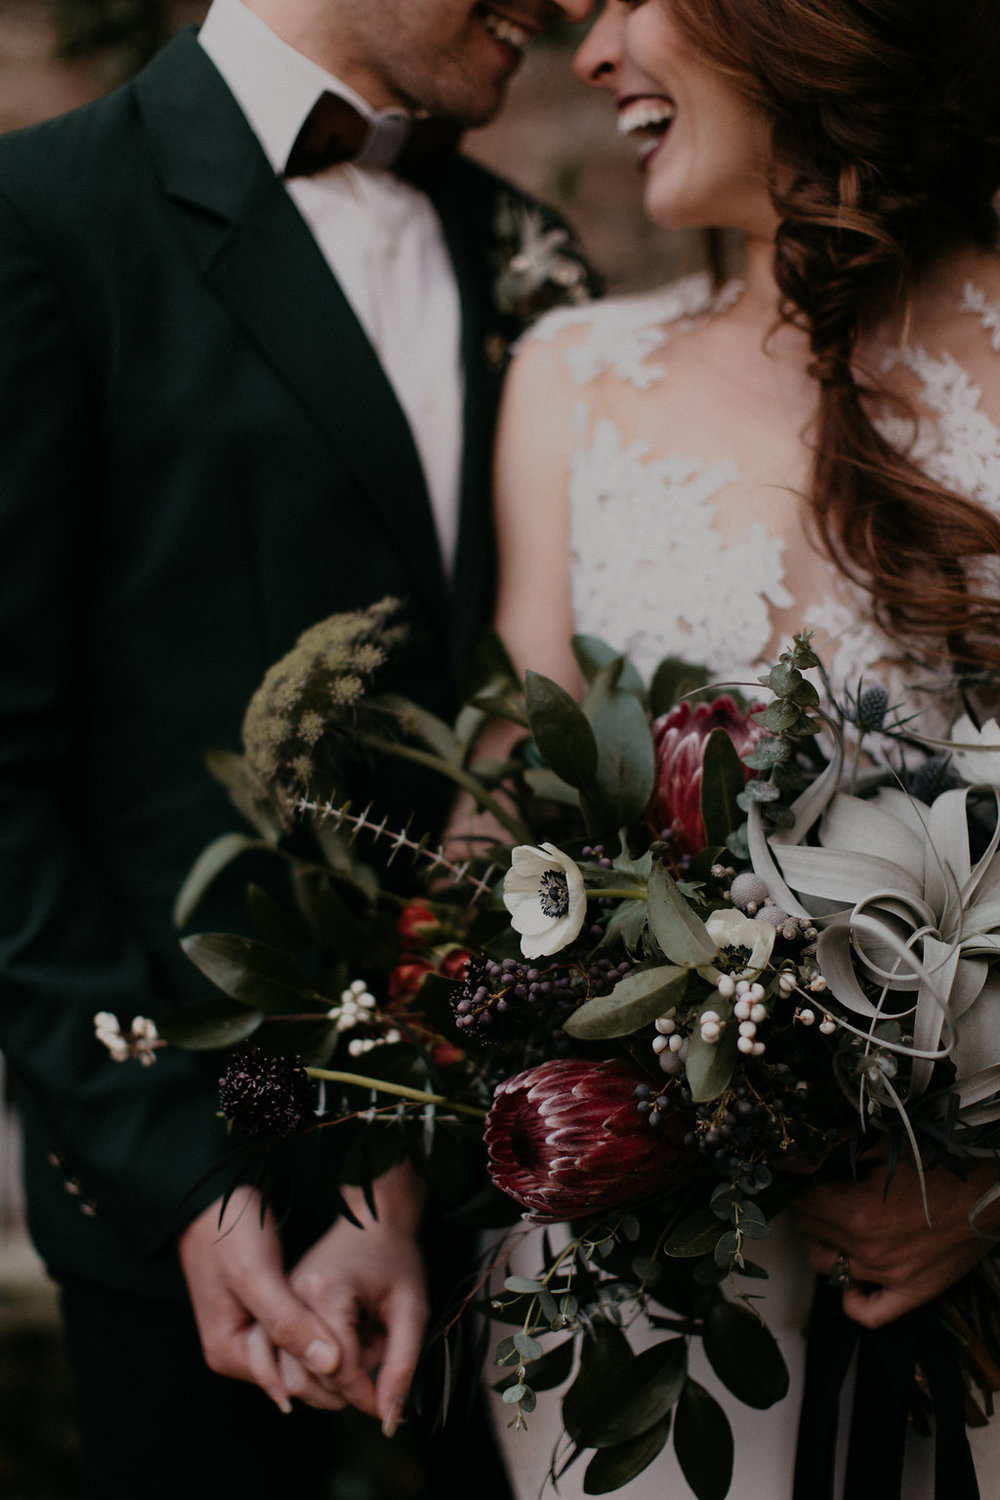 Wintry Bridal Bouquet with air plants, peonies, berries, eucalyptus, and loose, untamed greenery // Nashville Florist